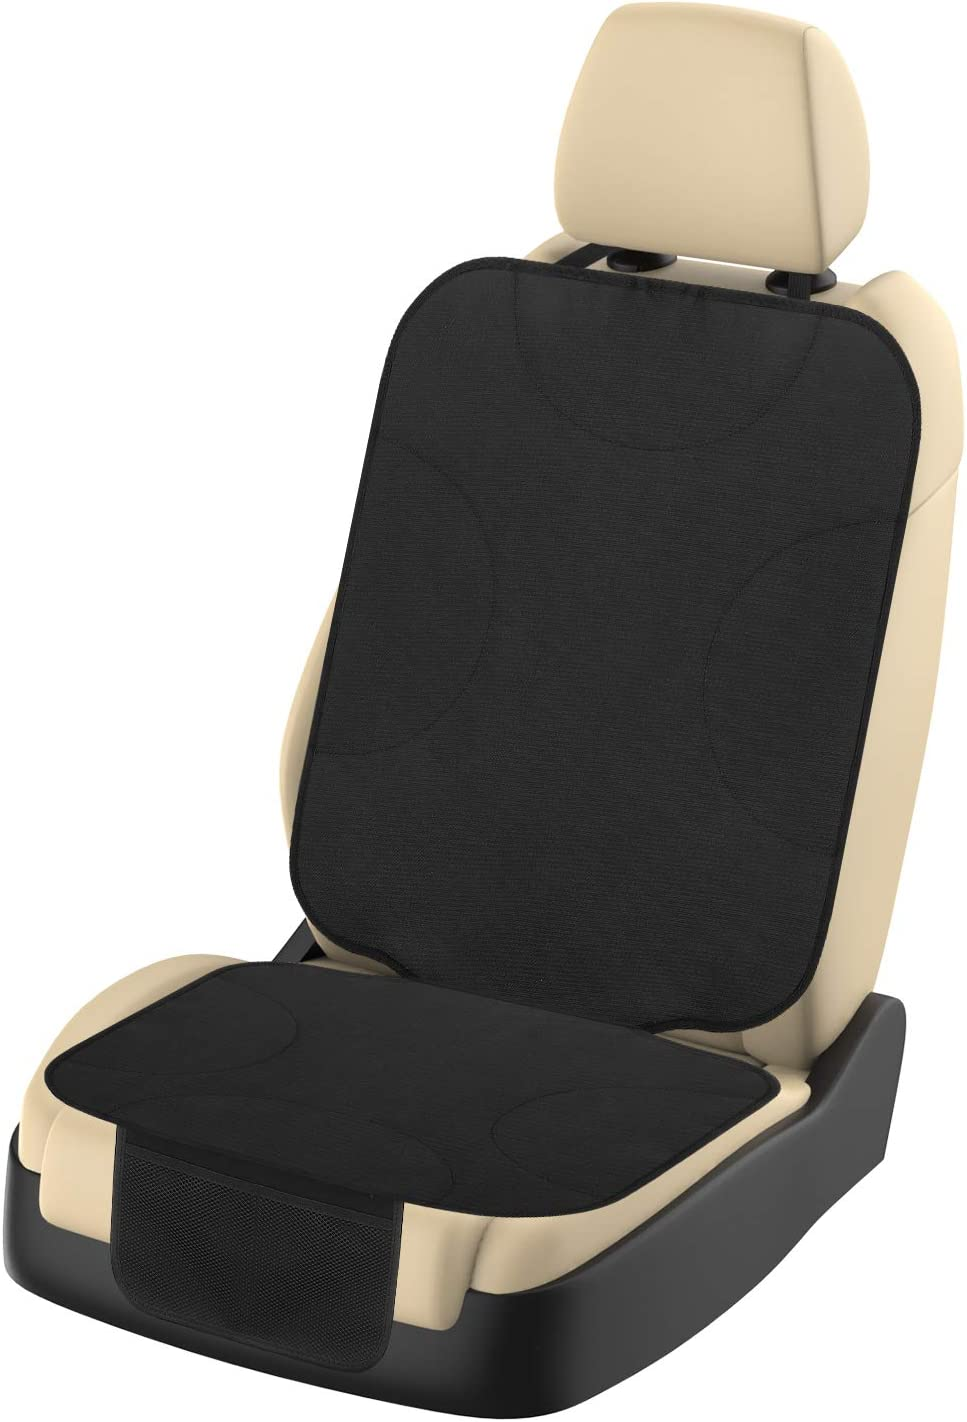 Car Child Seat Back Protector Case Cover Kids Anti Kick Protection Pad Mats Tool